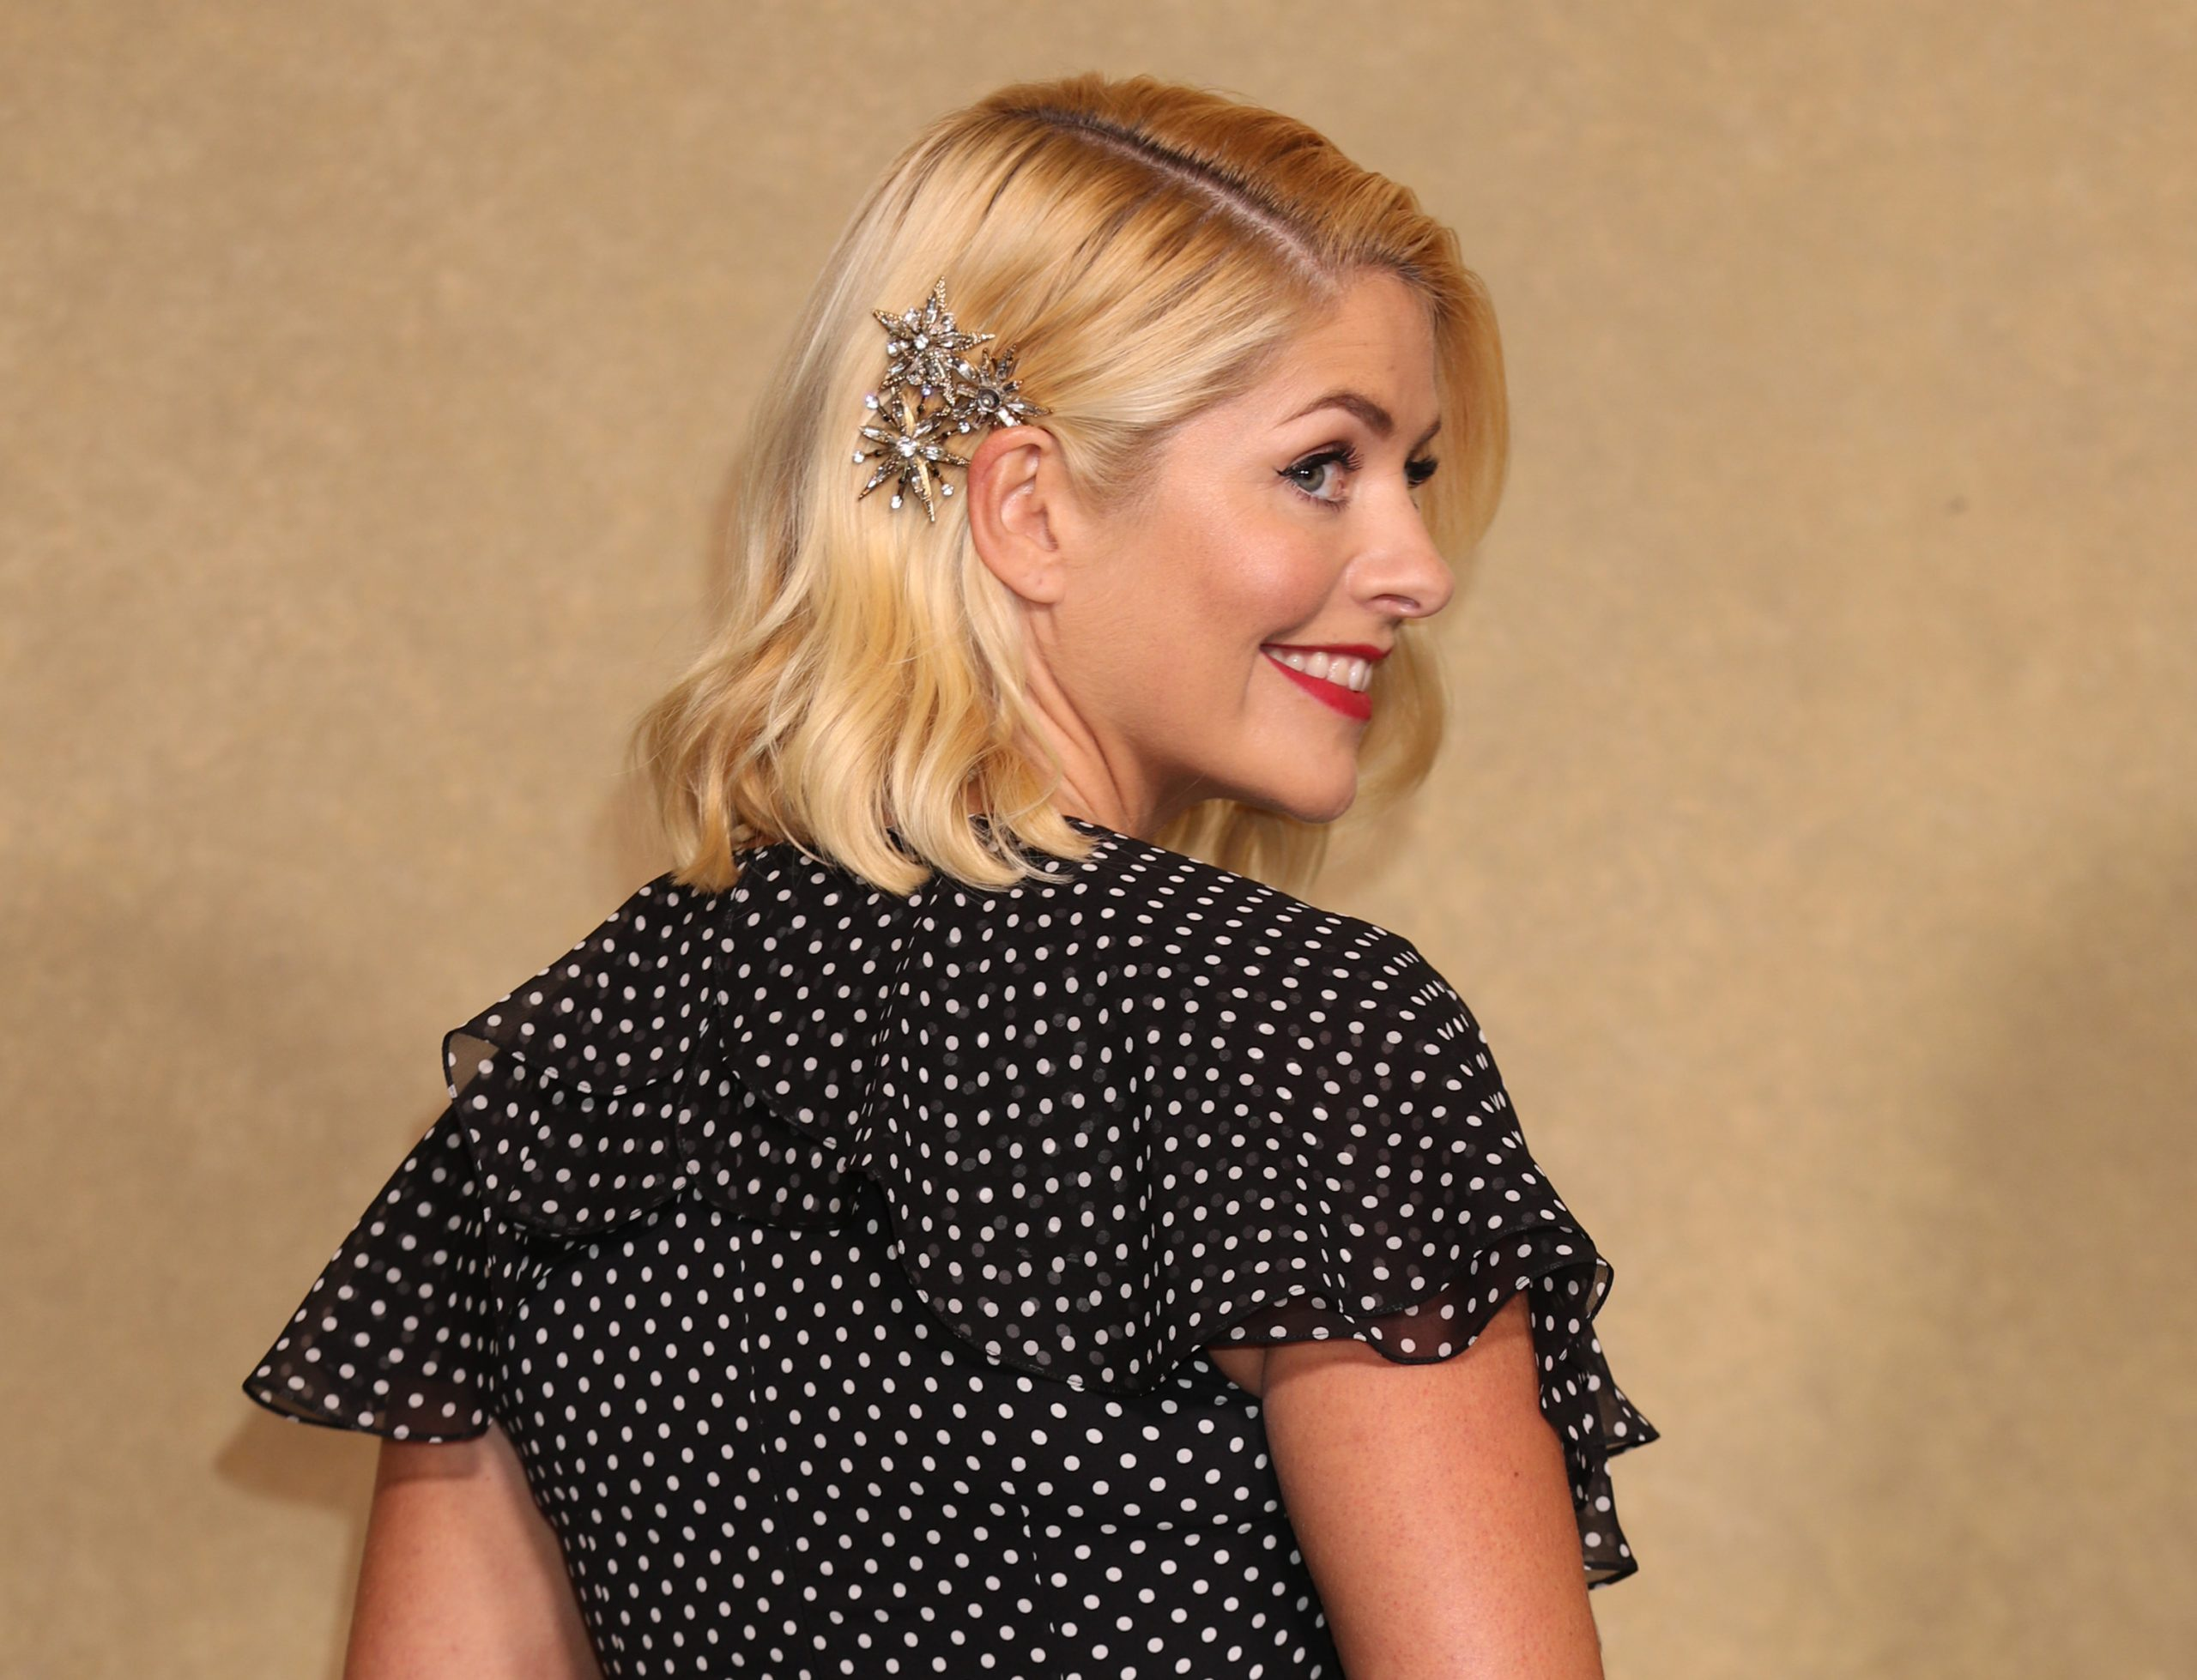 Holly Willoughby wore a gorgeous polka dot dress on This Morning and it's still available to buy